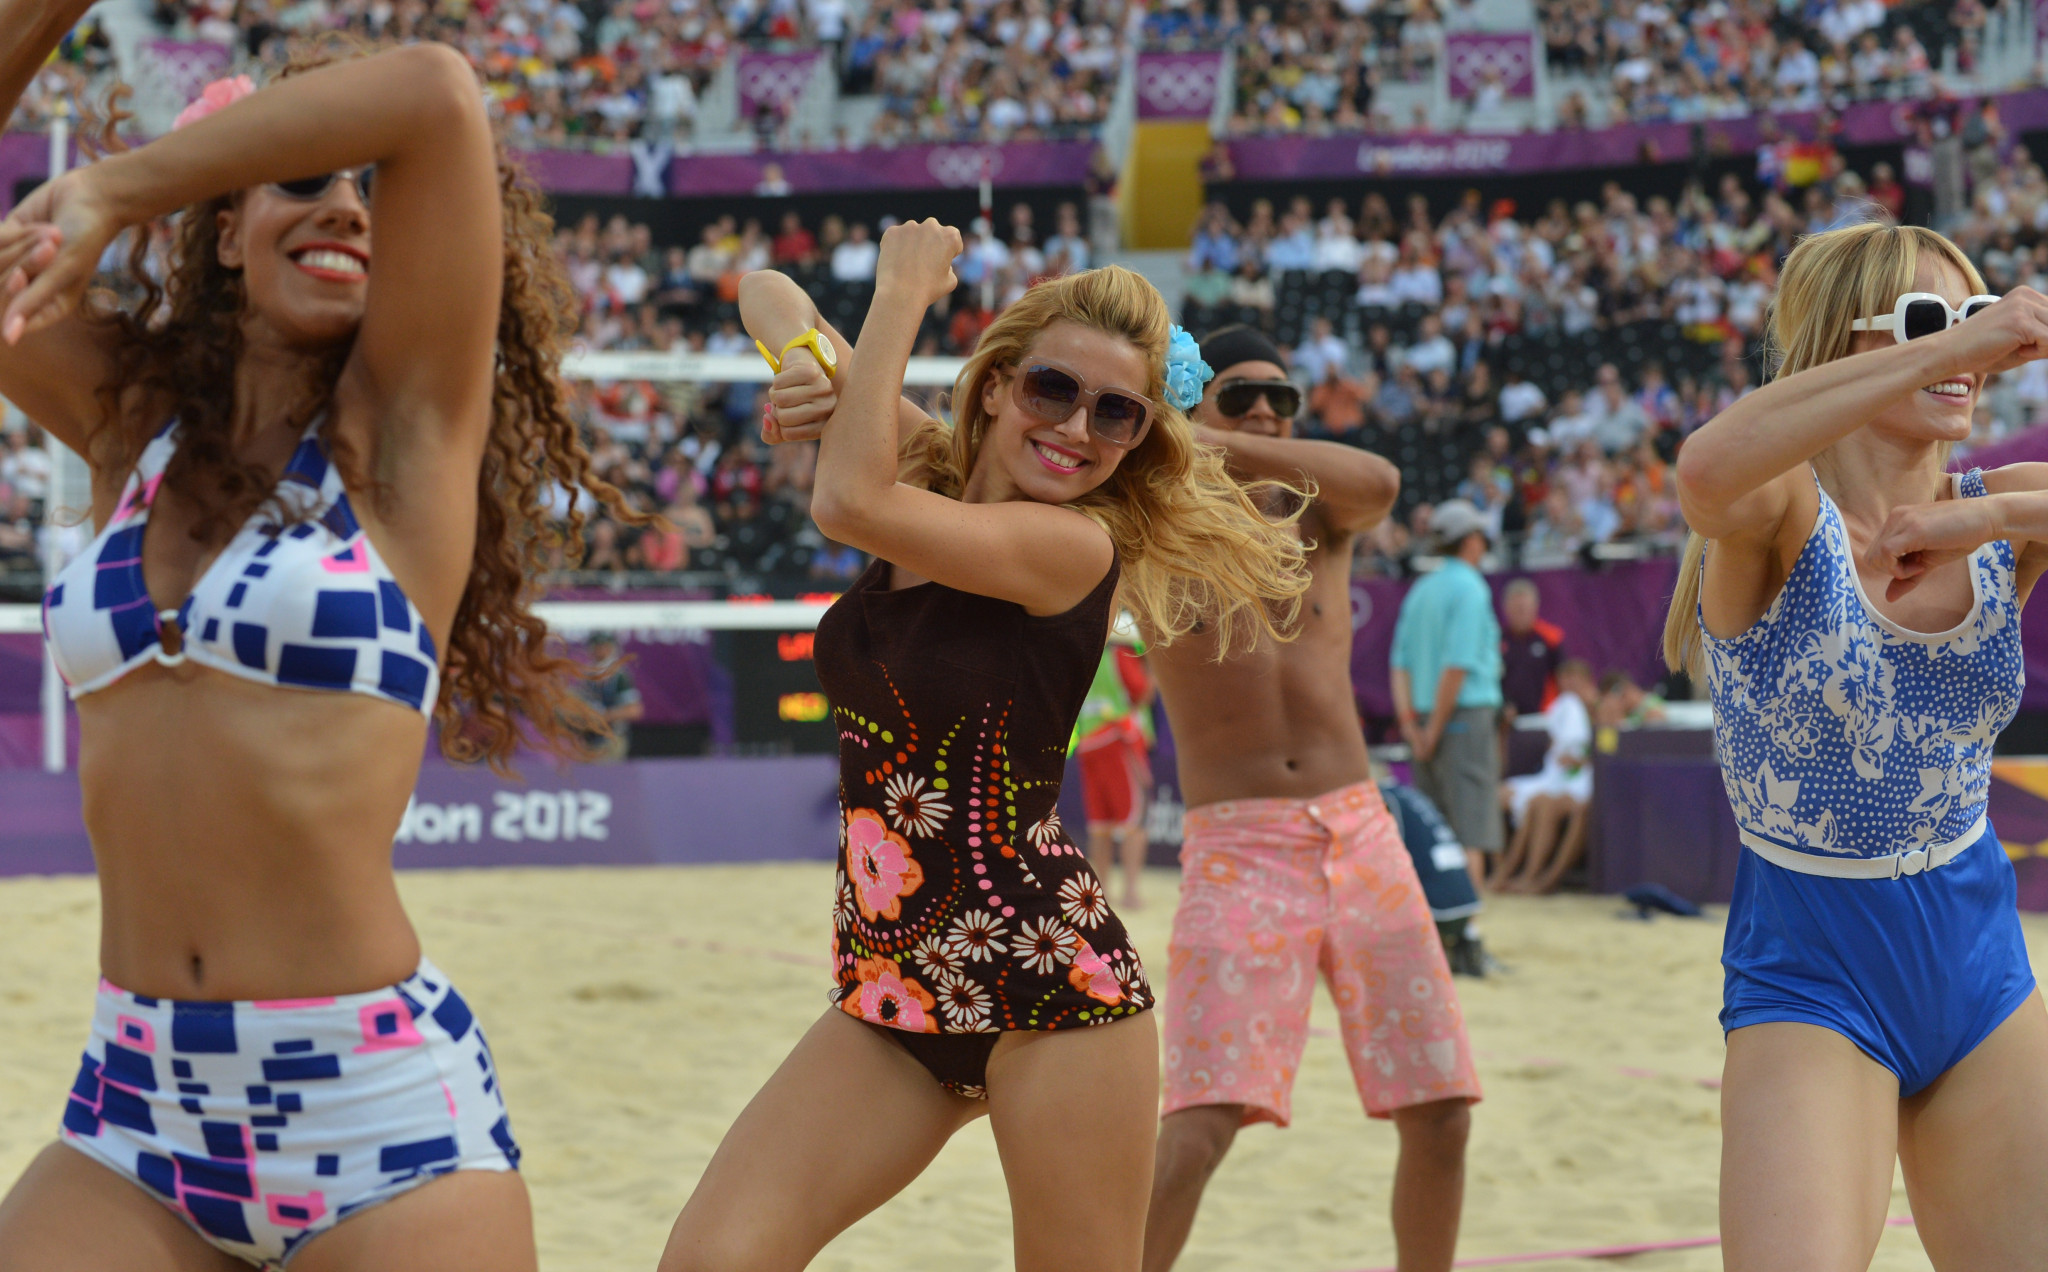 London 2012 promised top-level entertainment during the beach volleyball but ended up offering young dancers gyrating along to the theme track from the Benny Hill Show ©Getty Images